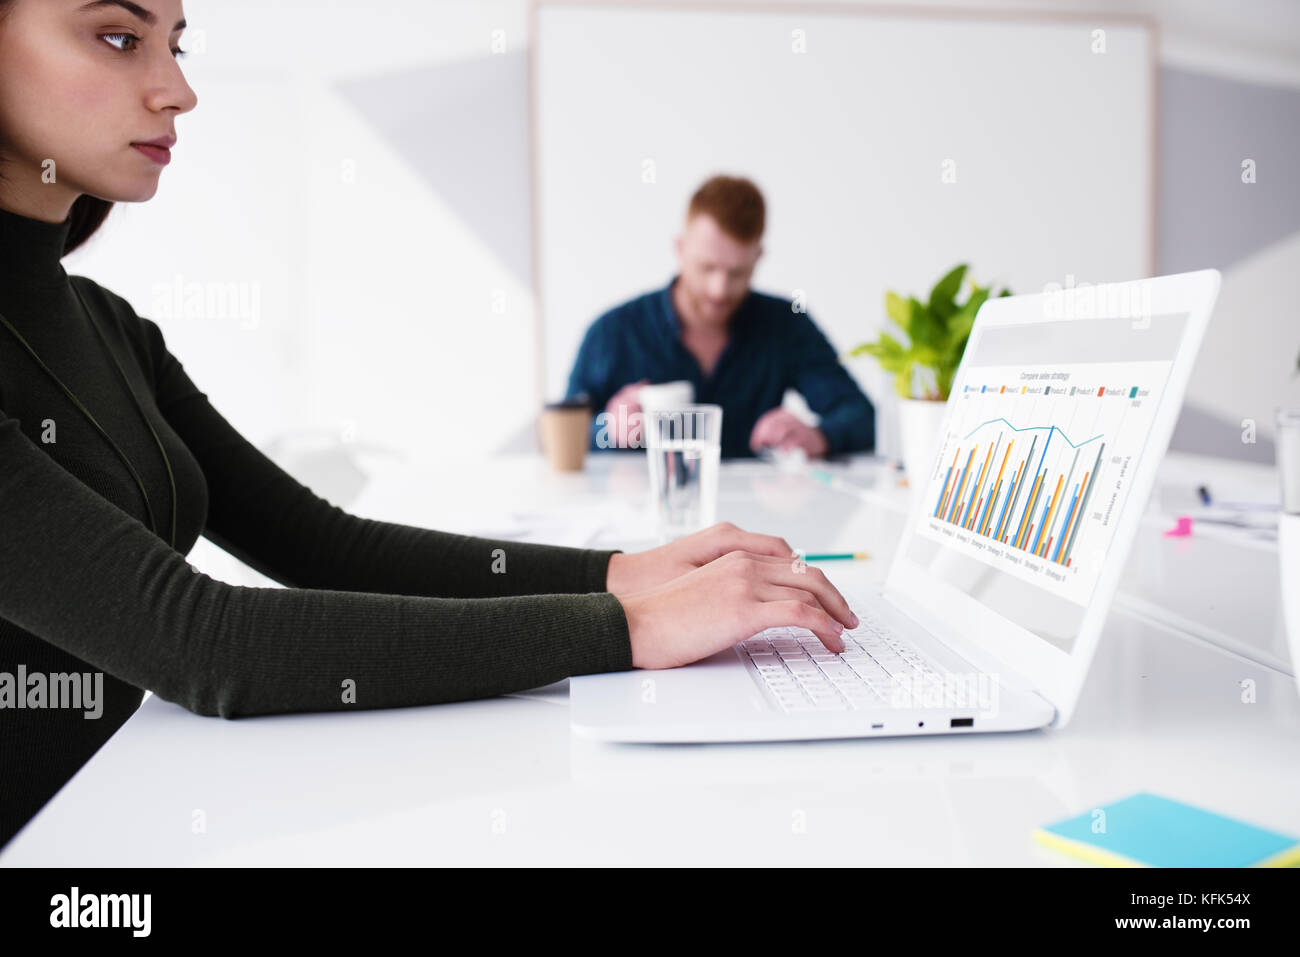 Girl works on a laptop with company statistics. Concept of internet sharing and interconnection - Stock Image